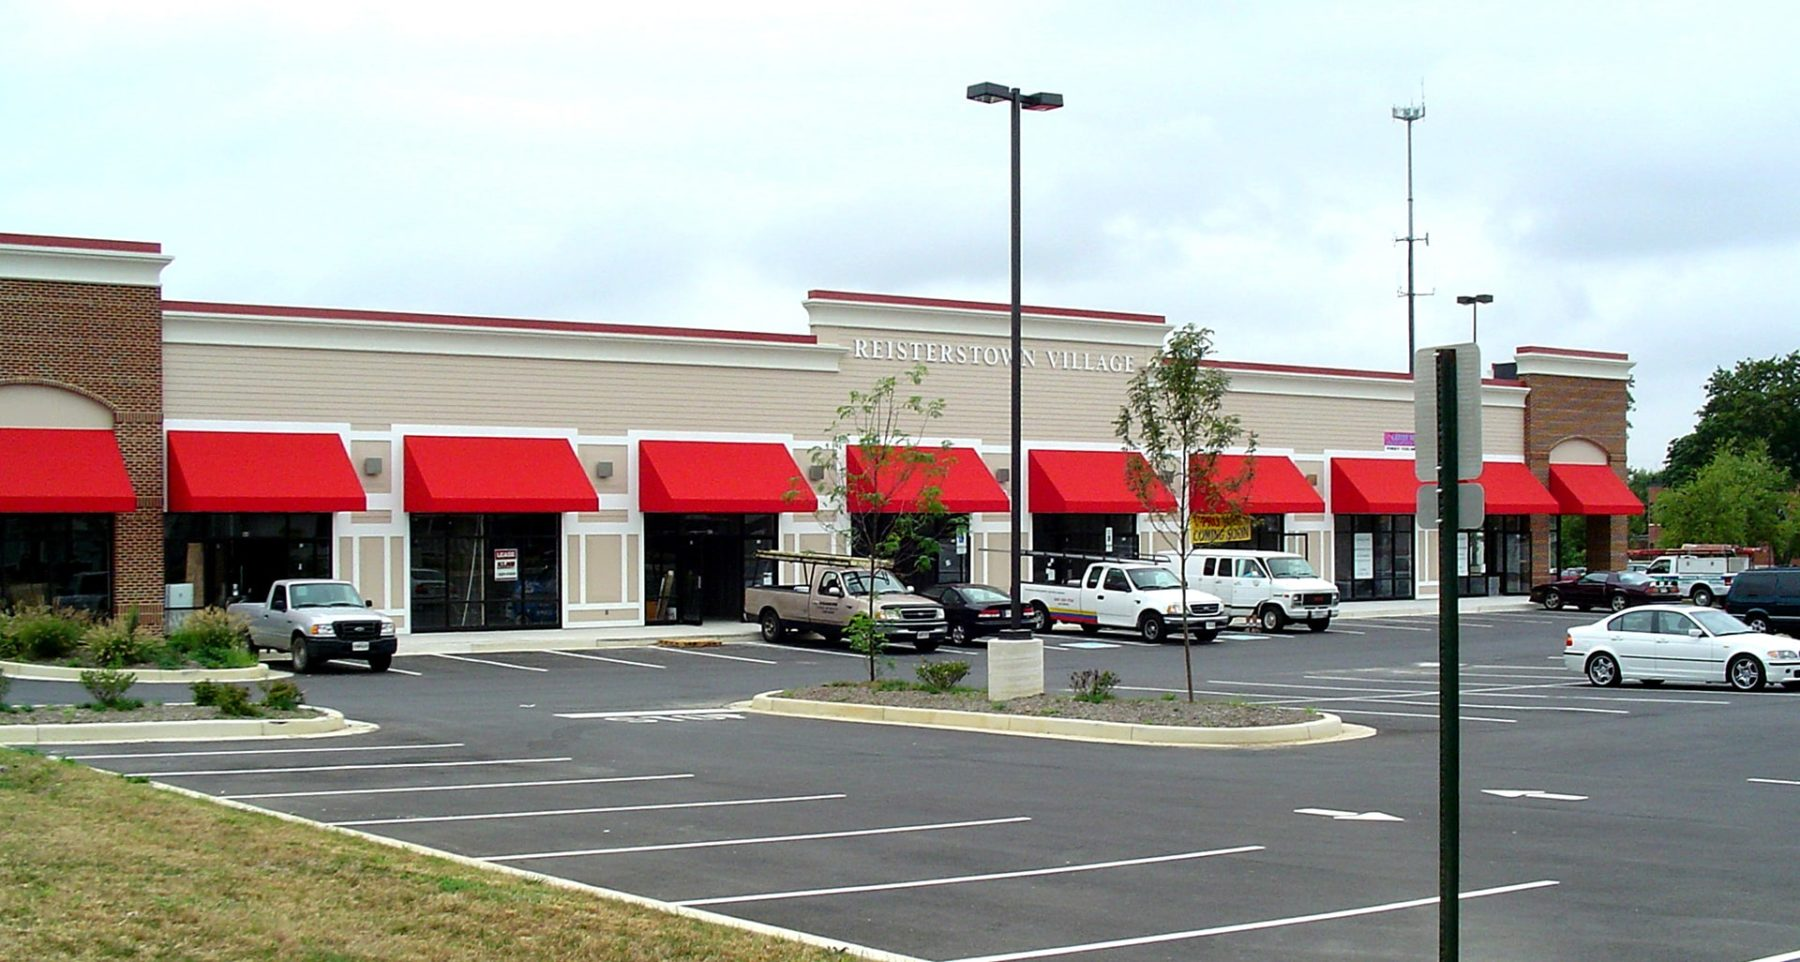 Reisterstown Shopping Center